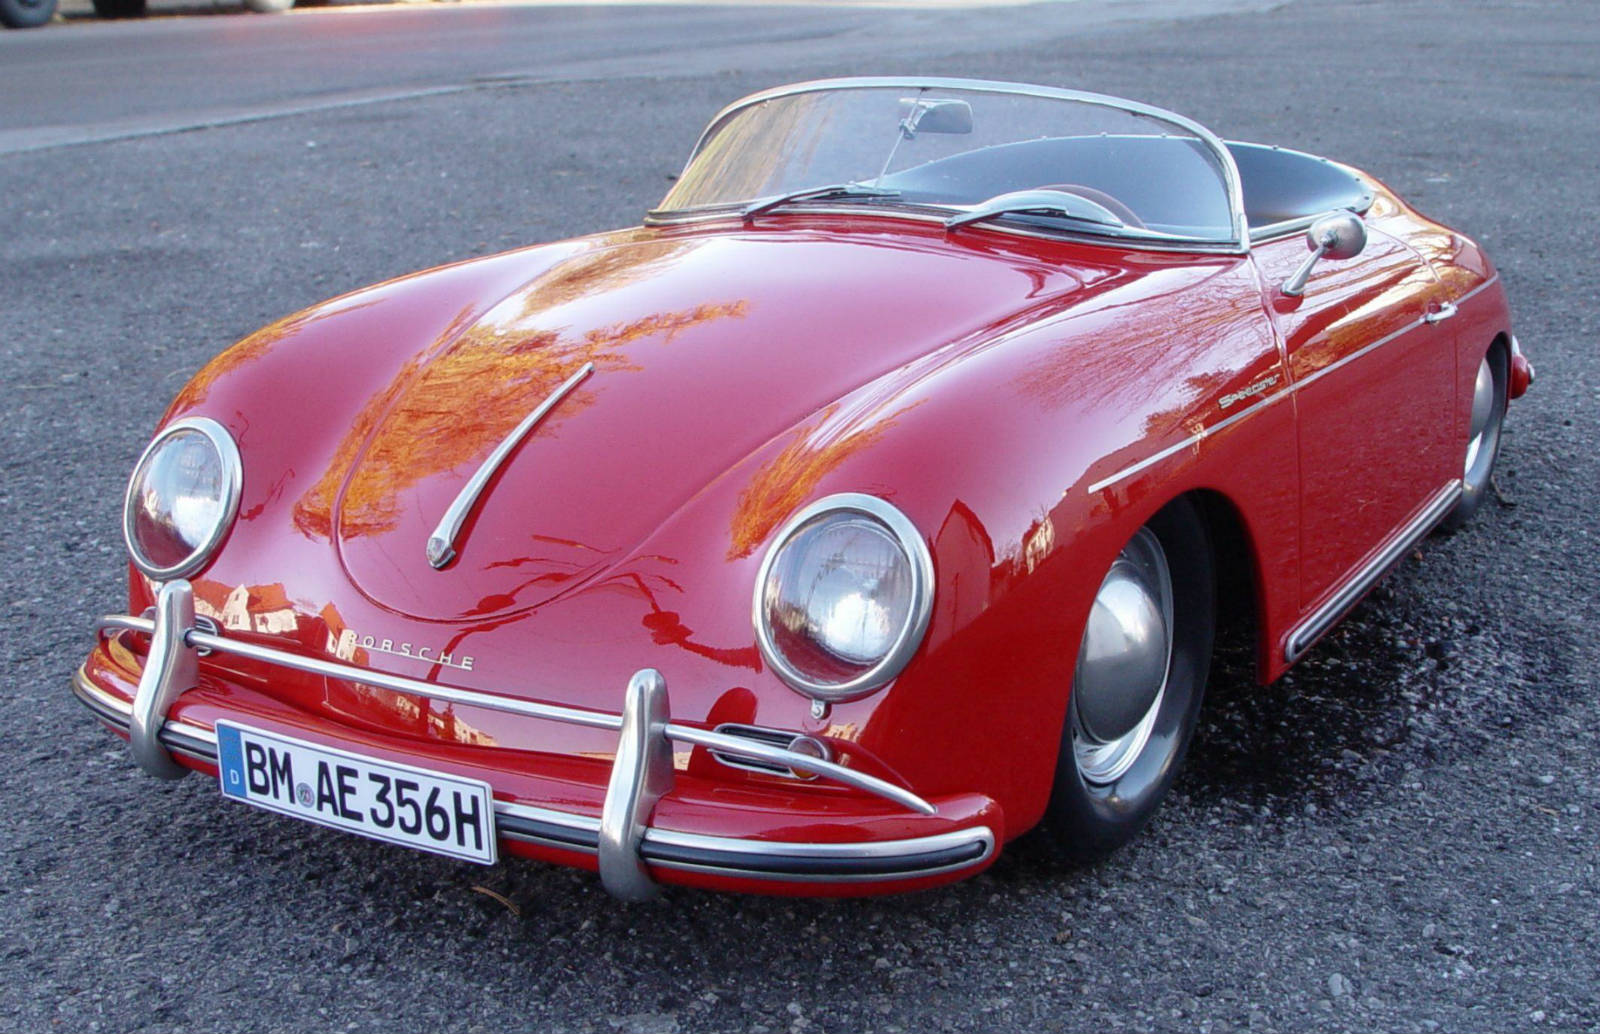 Porsche 356 Speedster, much like James Dean had, and Janis Joplin amongst others. (Picture courtesy zillioncars.com)